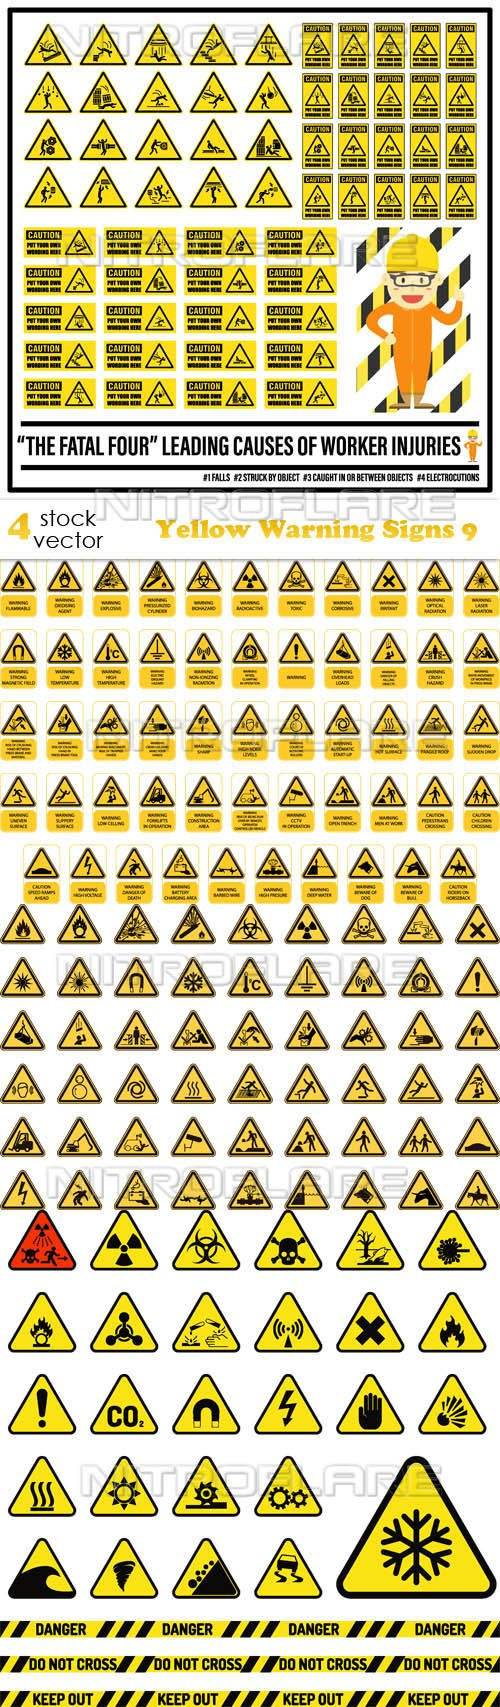 Vectors - Yellow Warning Signs 9